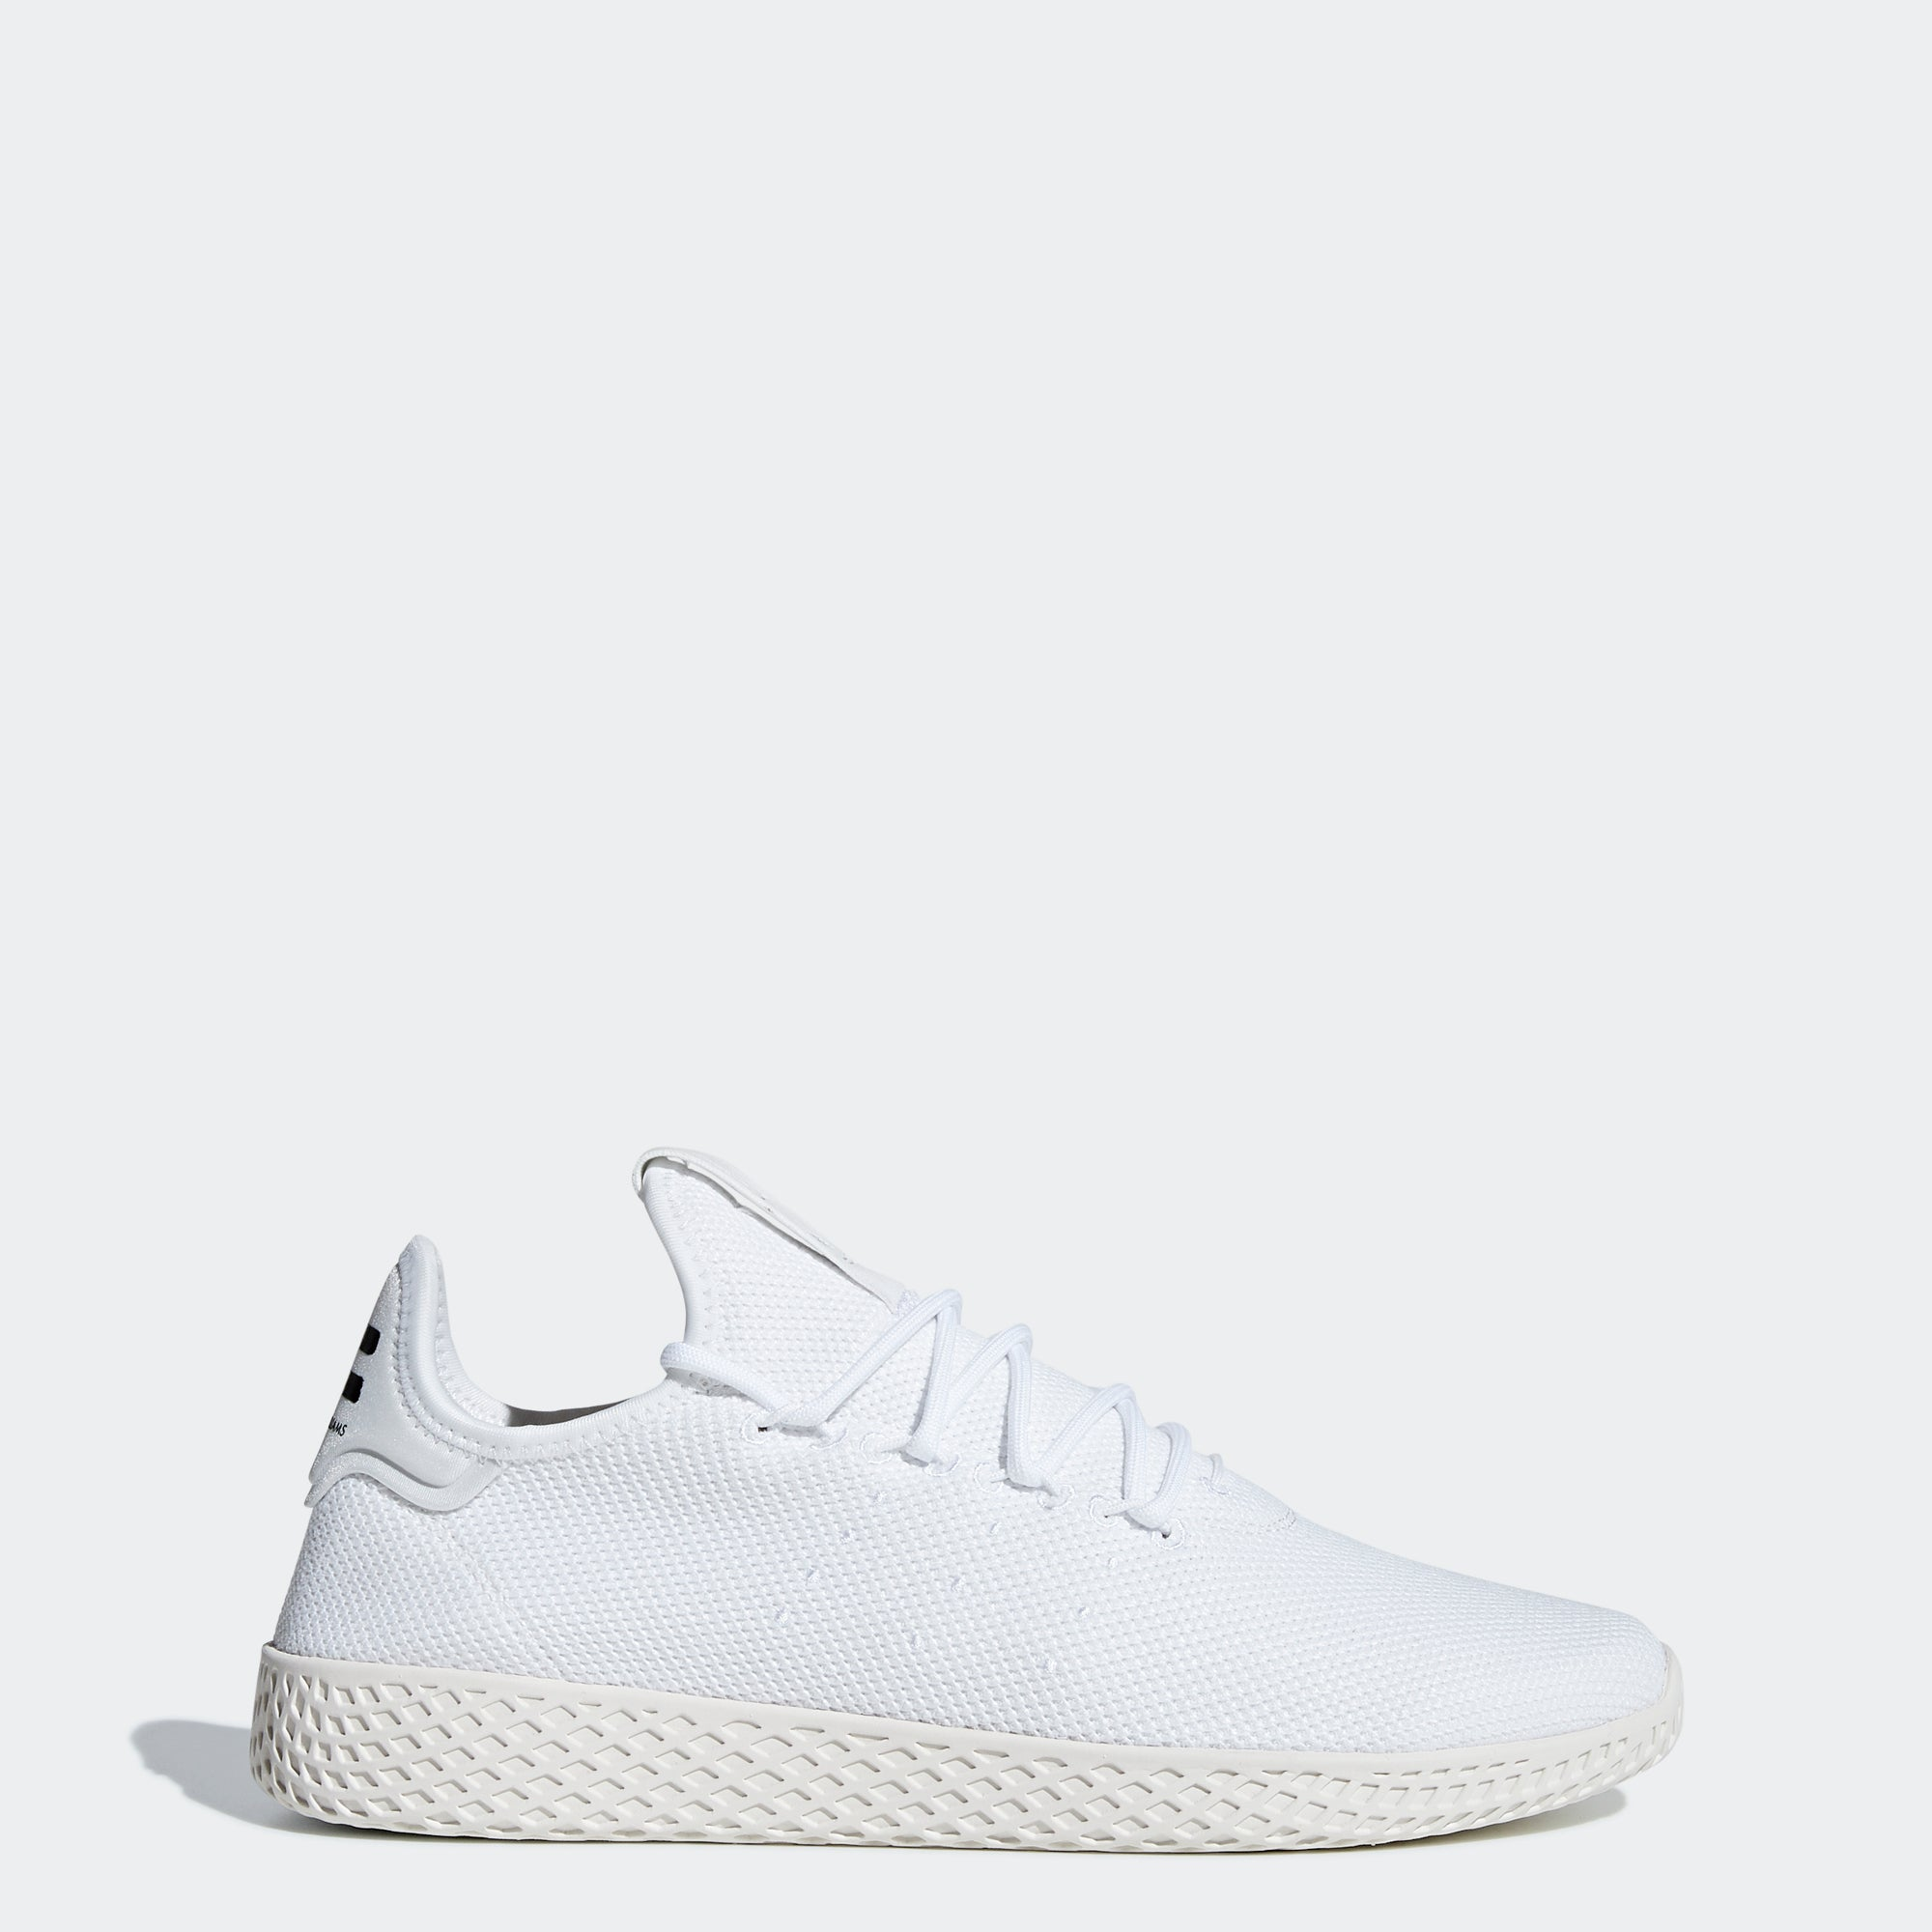 557967eb3b6e7 Men s adidas Originals Pharrell Williams Tennis Hu Shoes Cloud White